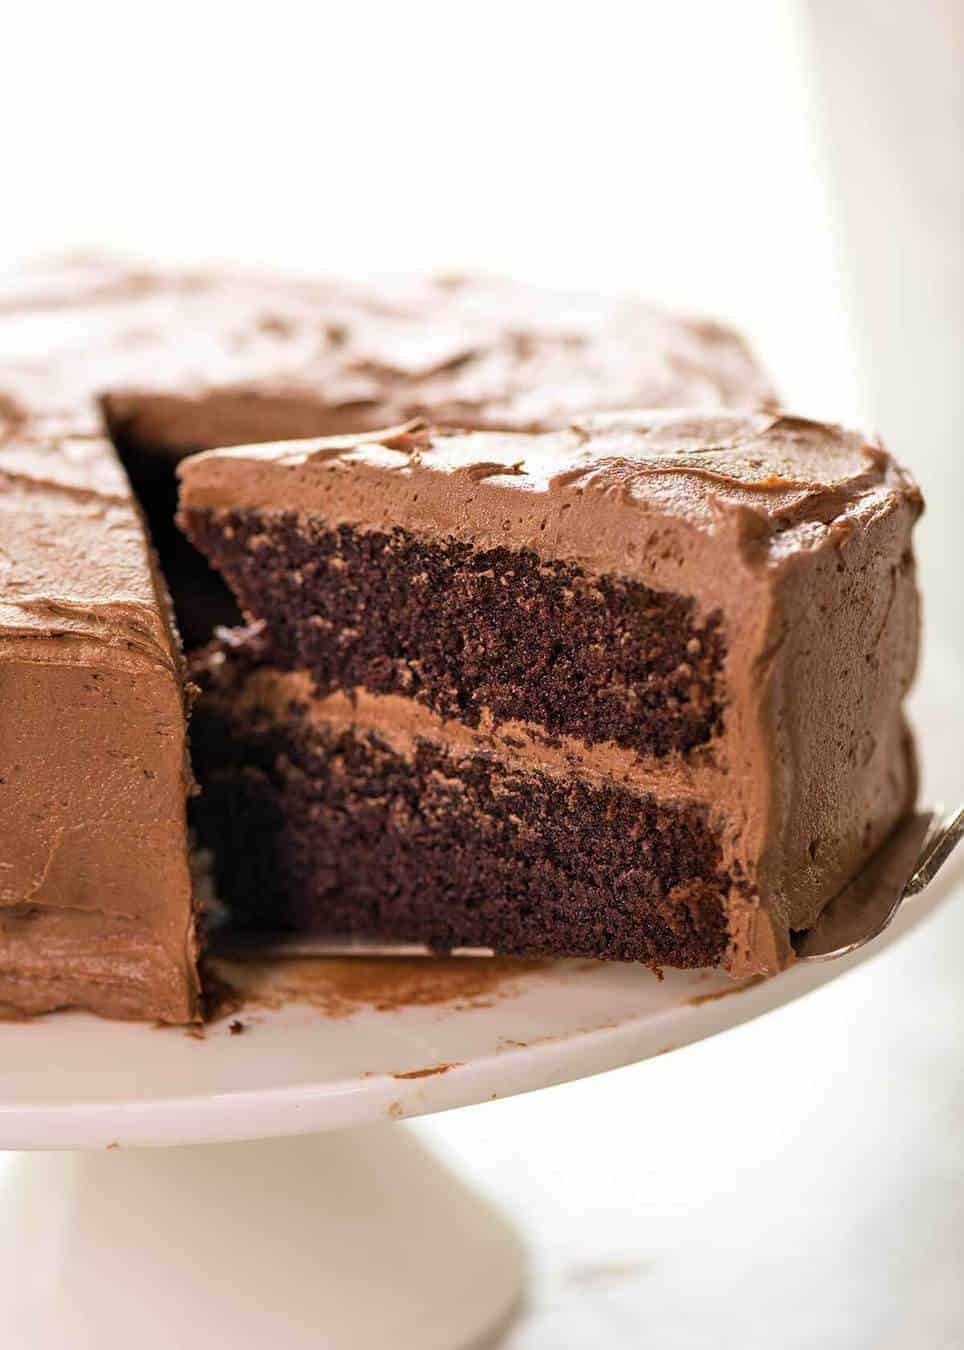 A photo showing half a Chocolate Cake frosted with Chocolate Buttercream on a white cake stand with a large slice partially pulled out.